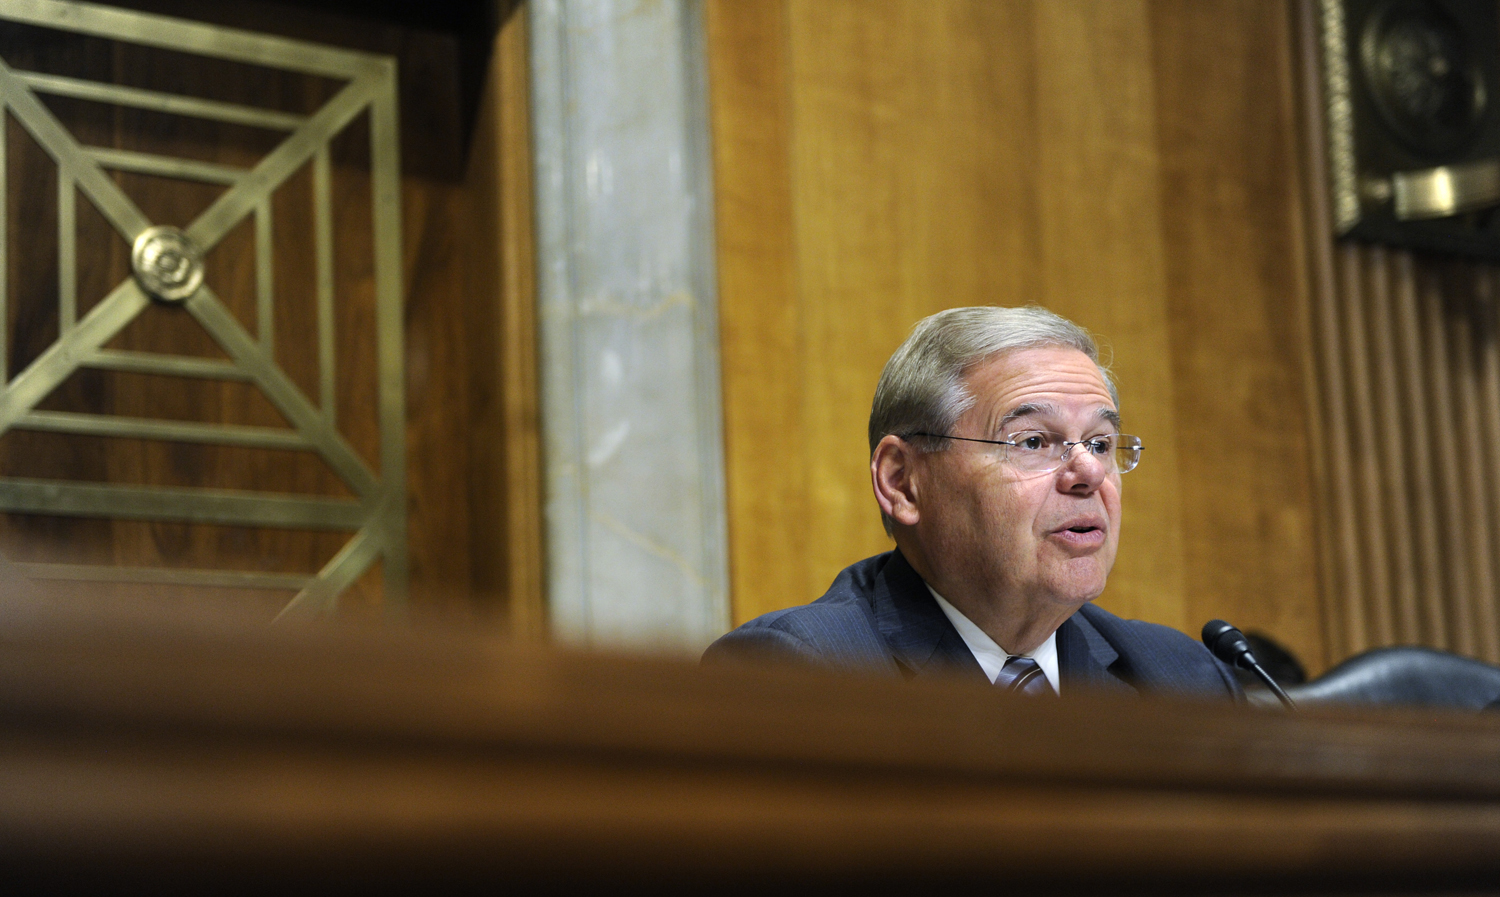 Senate Foreign Relations Committee Chairman Sen. Robert Menendez, D-N.J., questions State Department Undersecretary for Political Affairs Wendy Sherman on Capitol Hill in Washington on July 29, 2014.